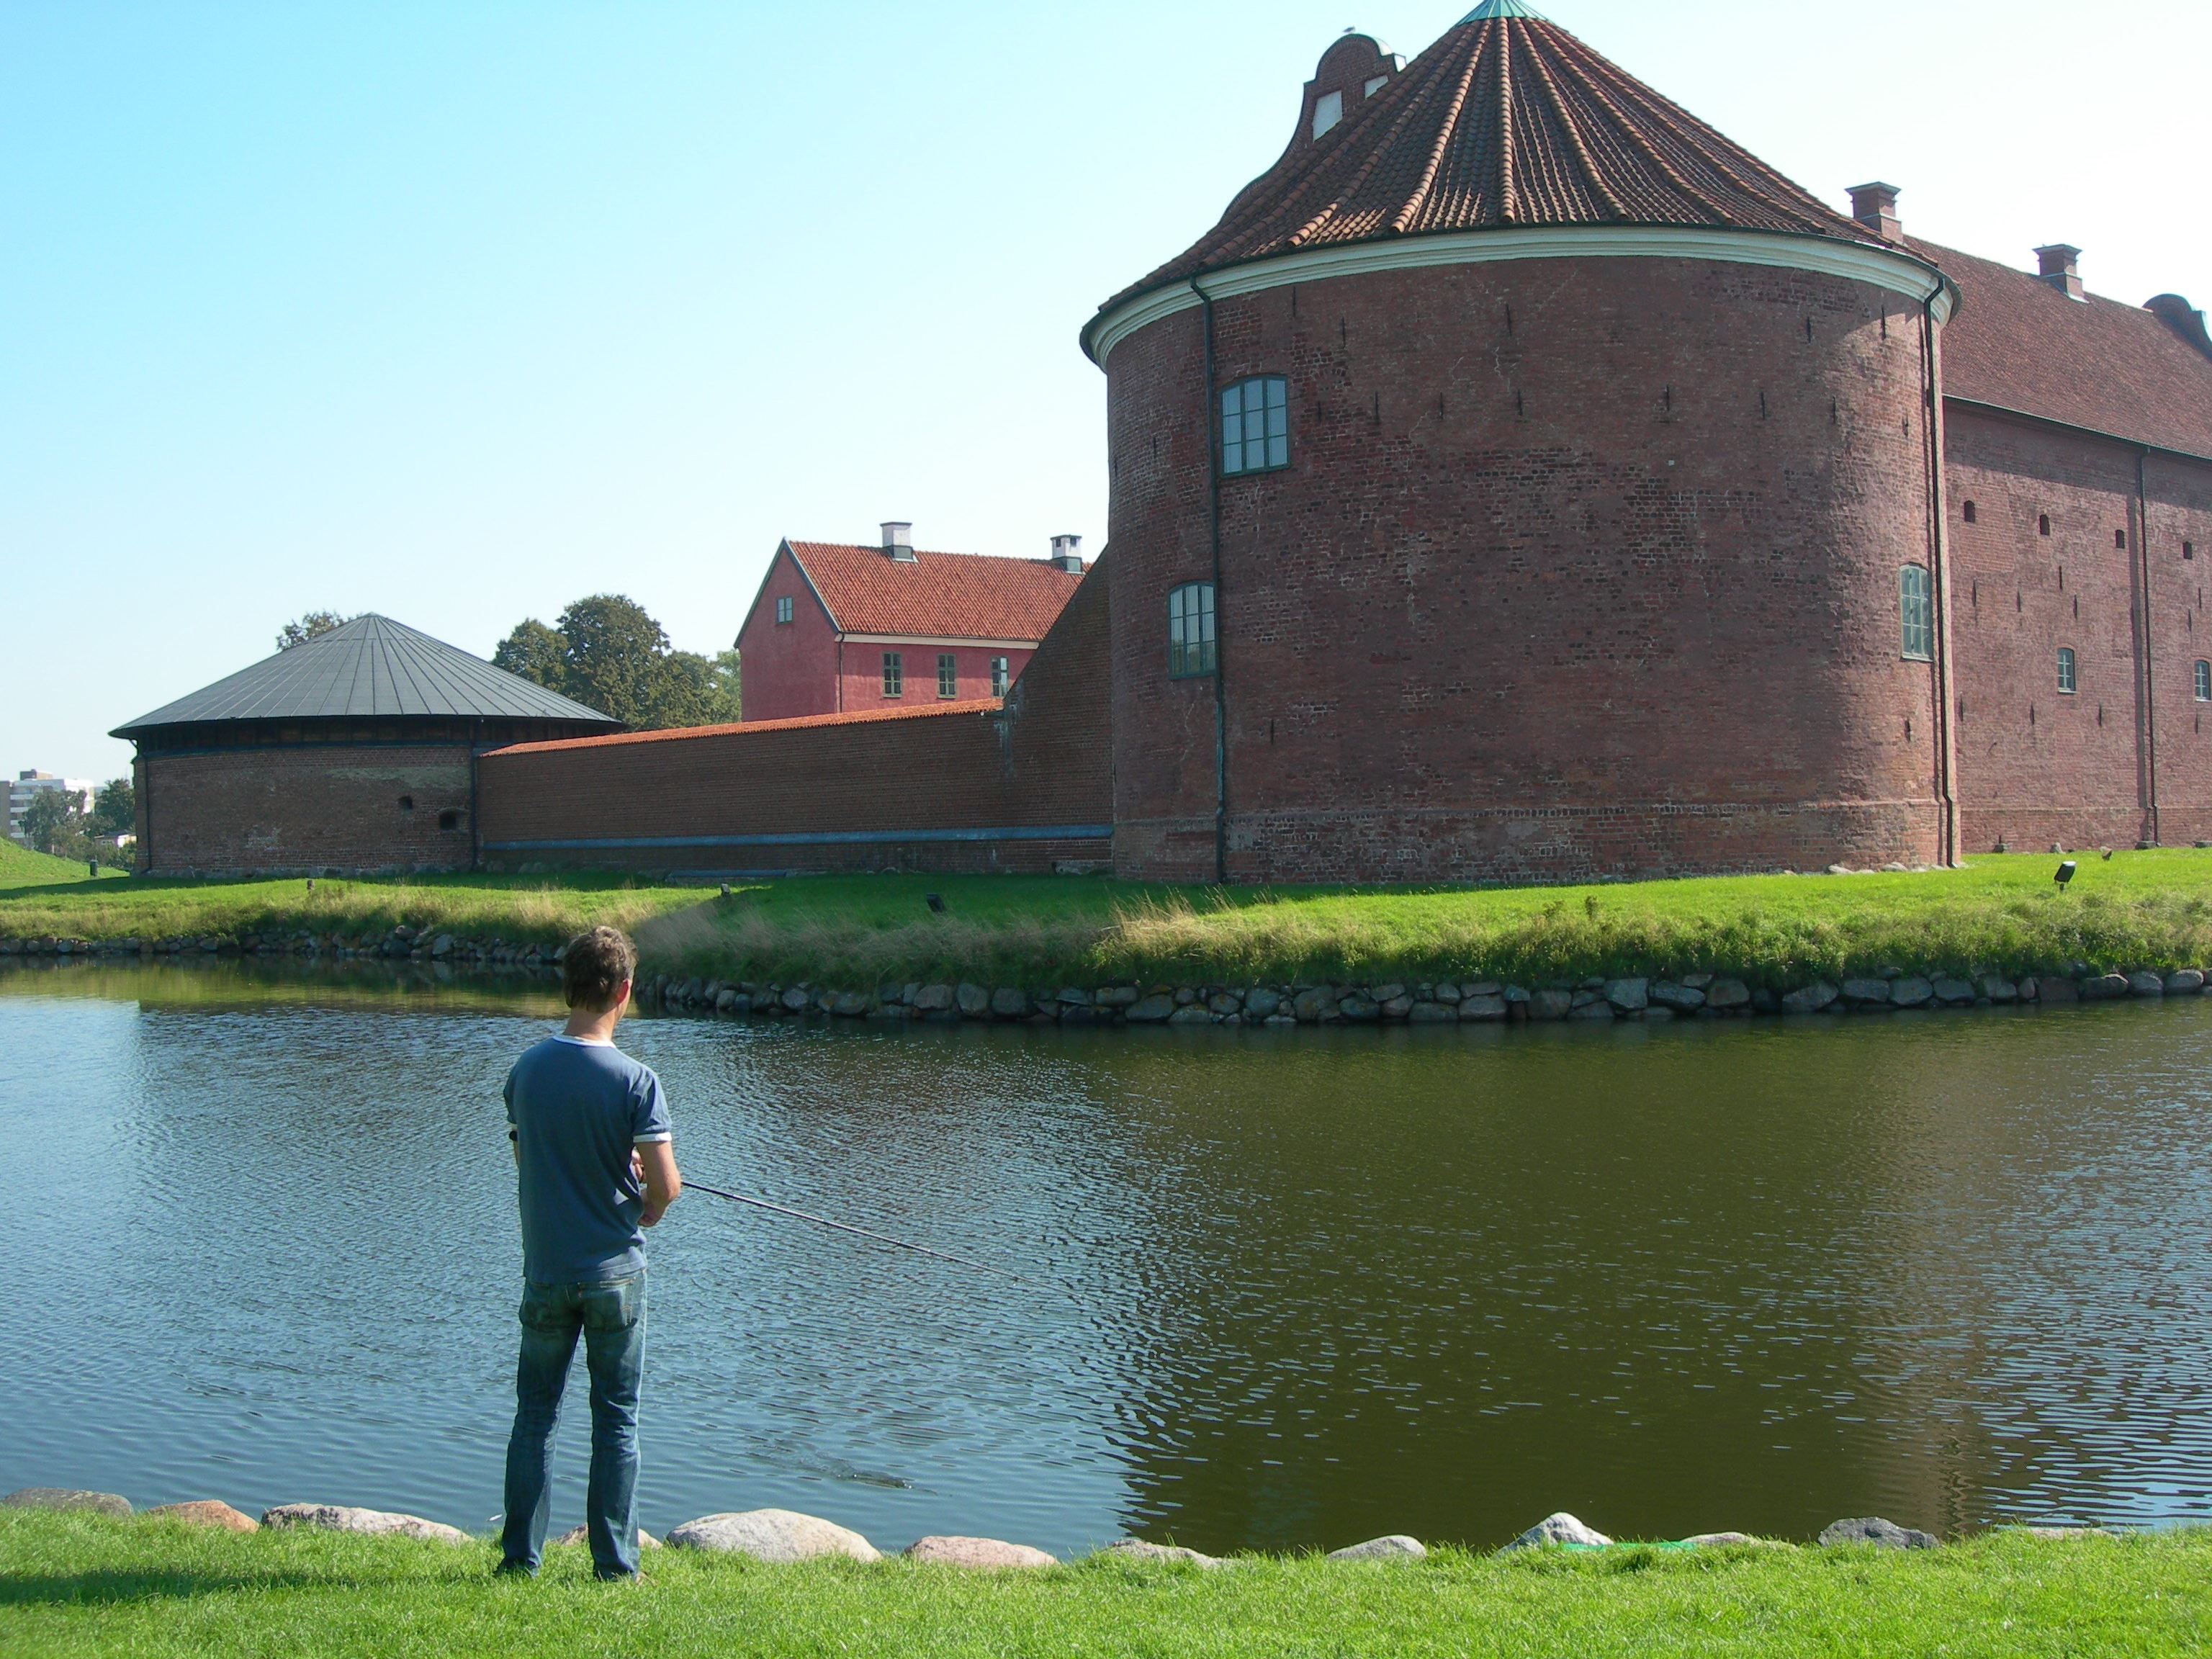 Landskrona stad, Fishing by the Citadell